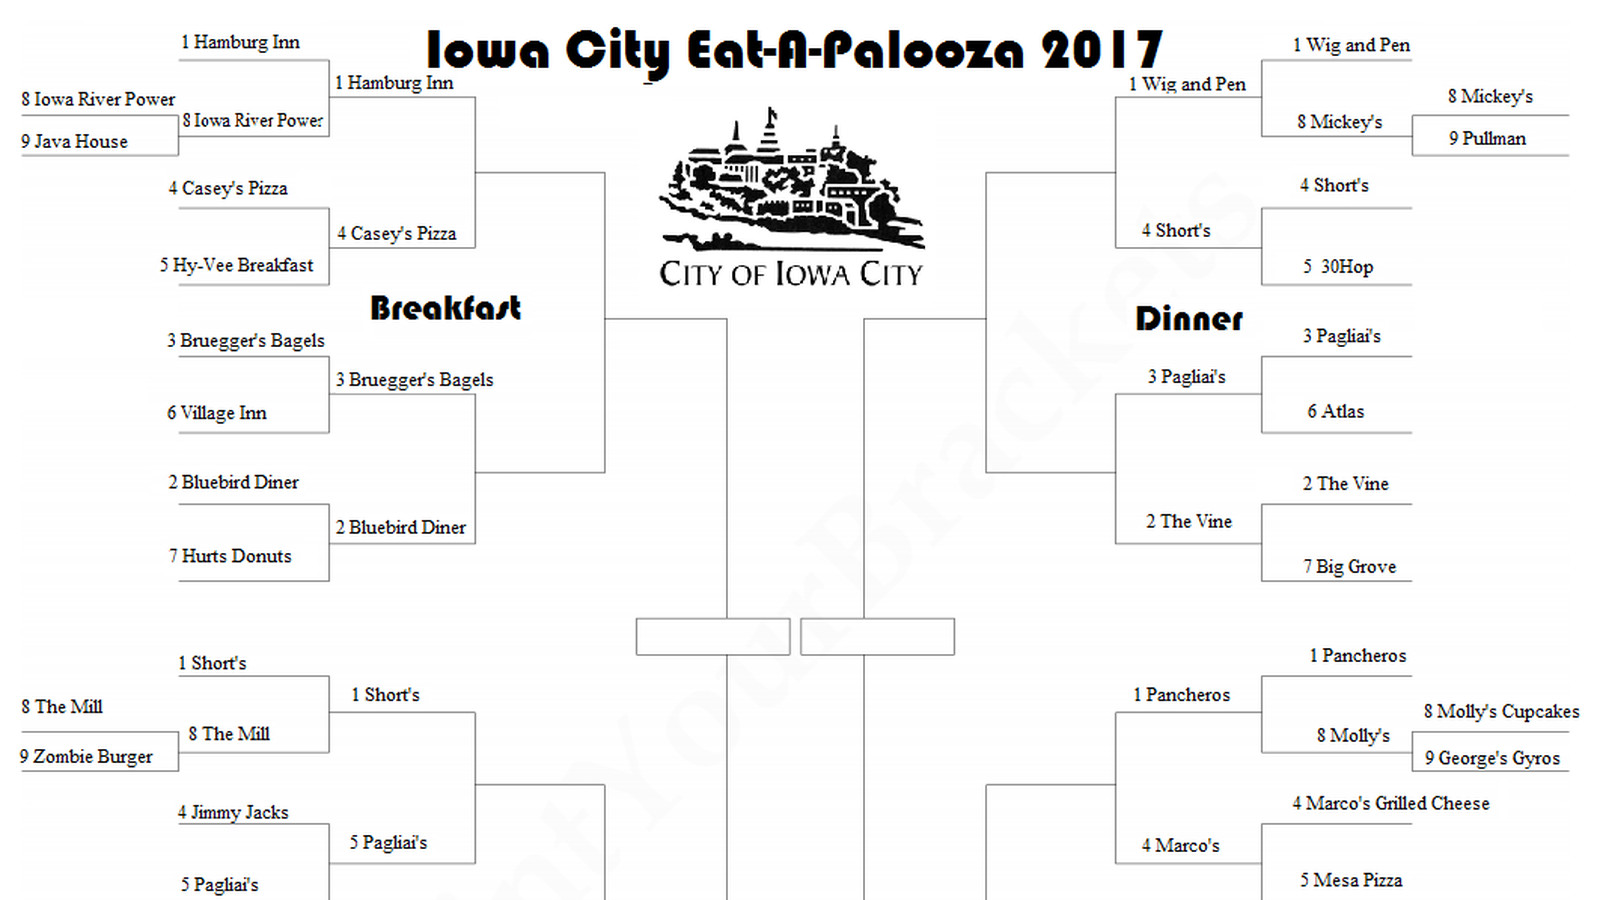 Food_bracket___ic___seeded.0